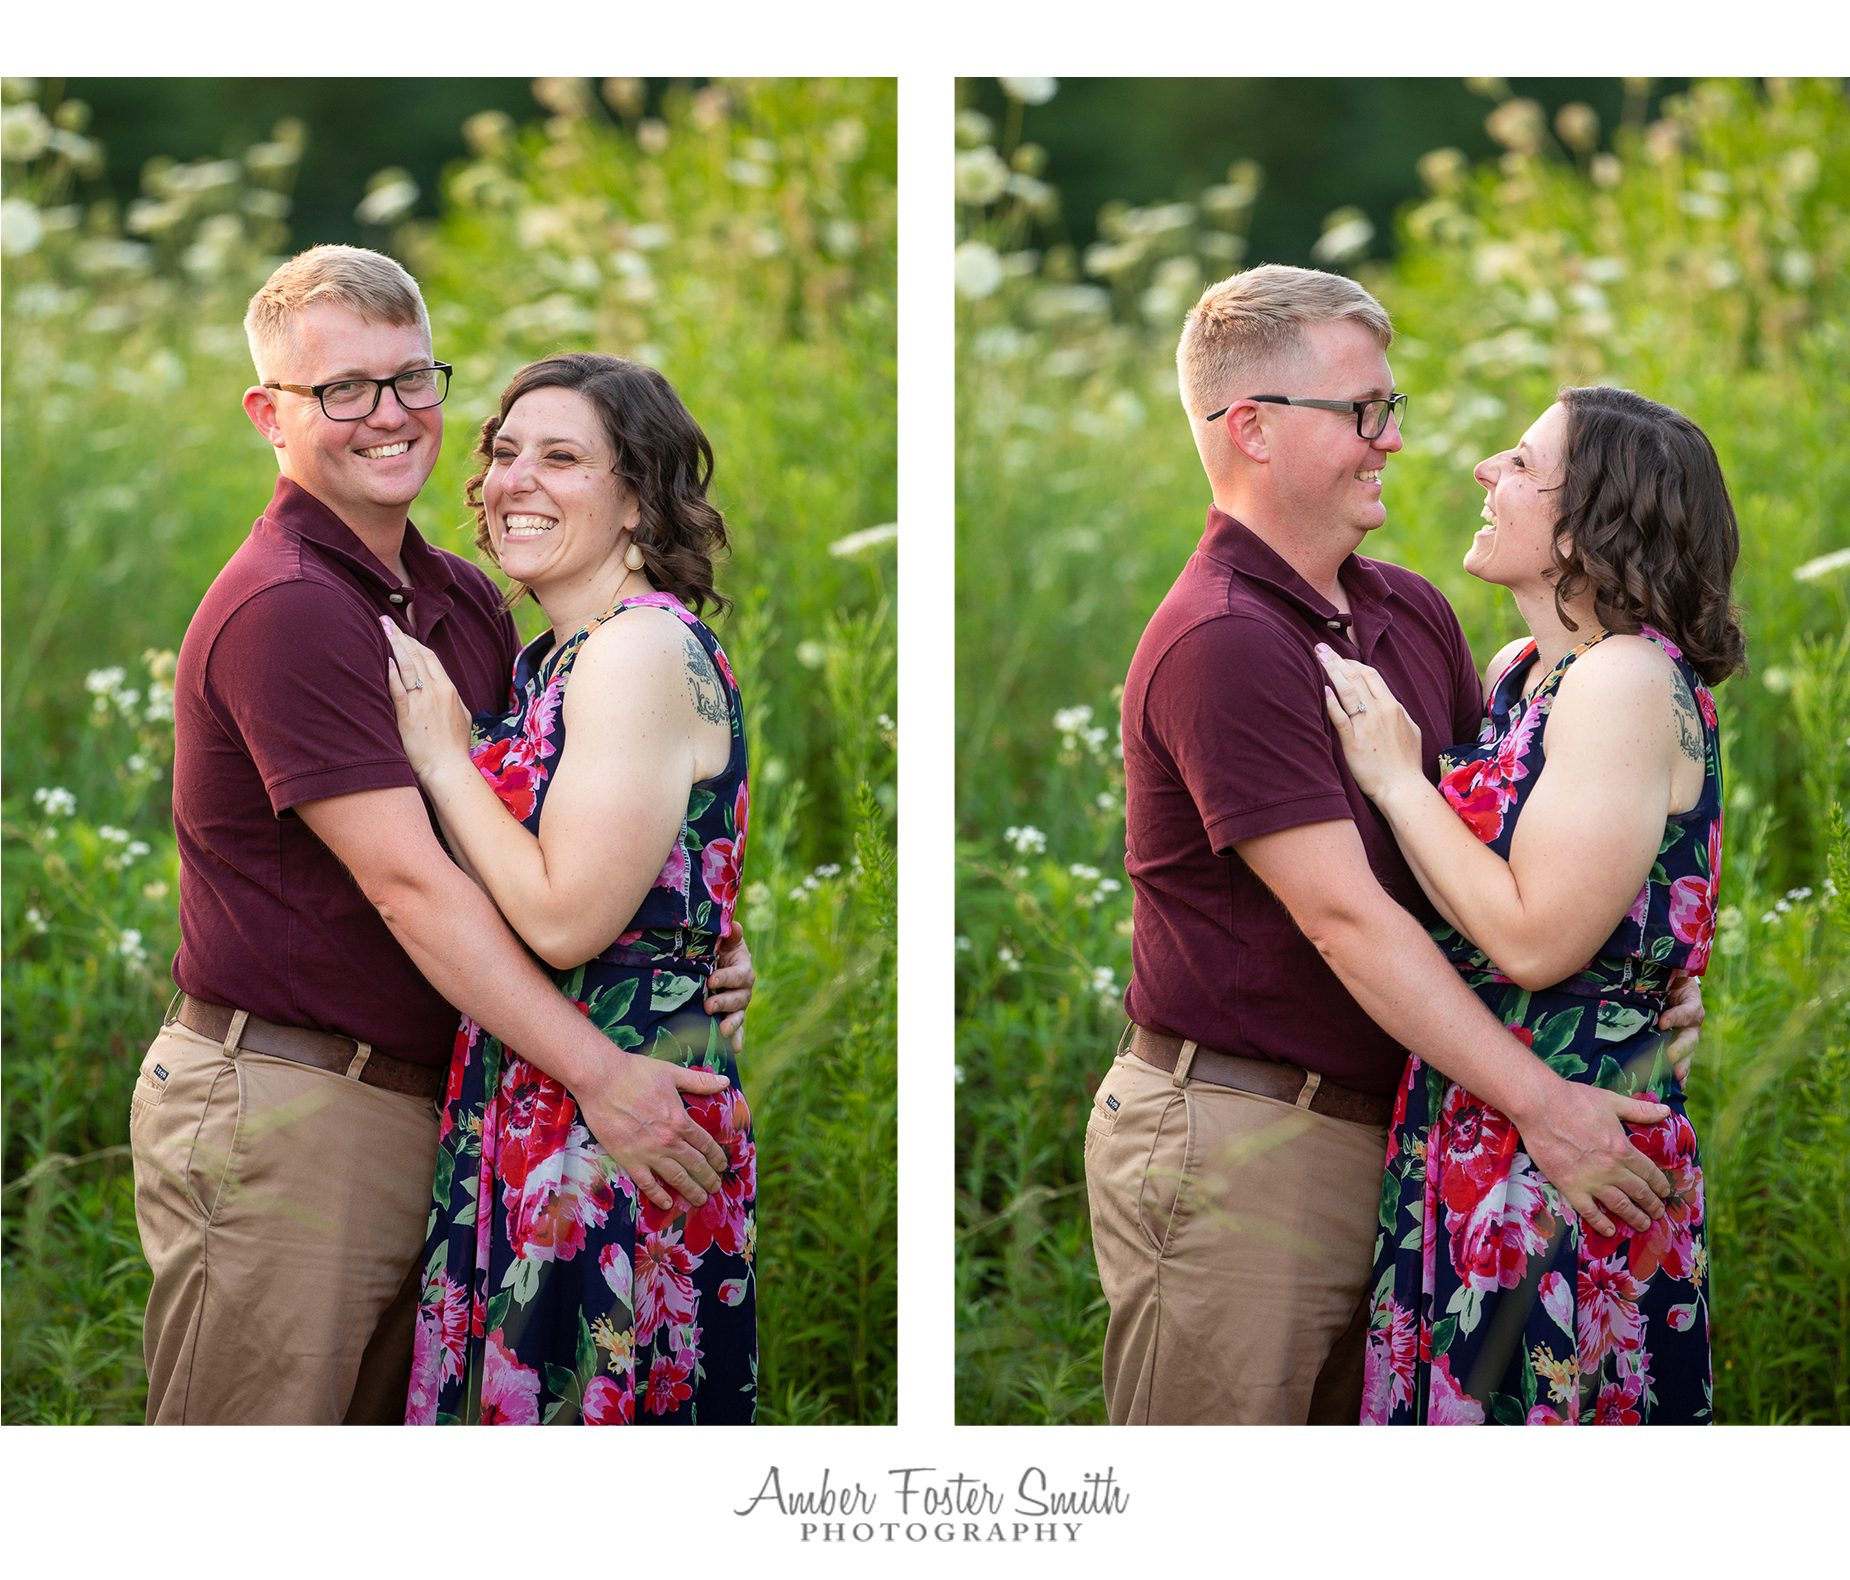 Amber Foster Smith Photography - Holly Springs Engagement Photography